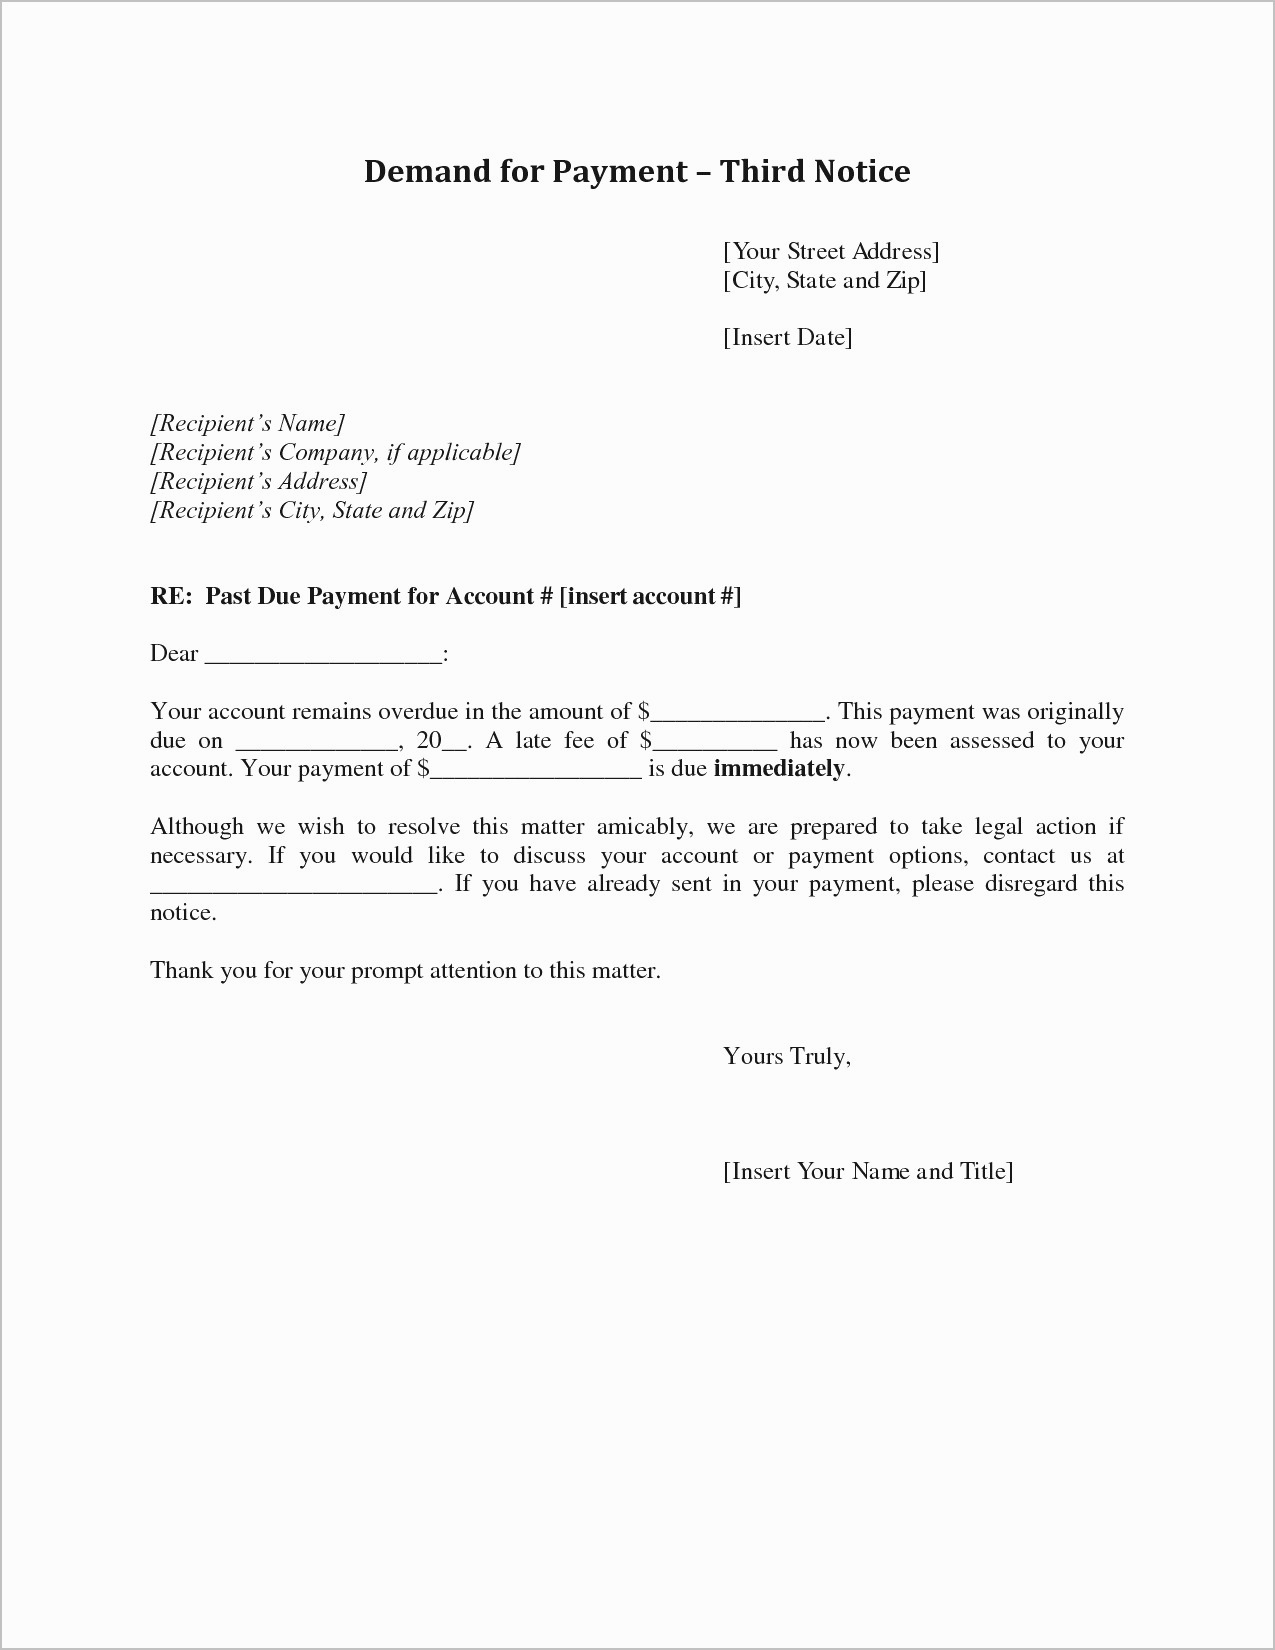 Free Legal Demand Letter Template - Sample Demand Letter for Unpaid Rent Lovely Sample Demand Letter for